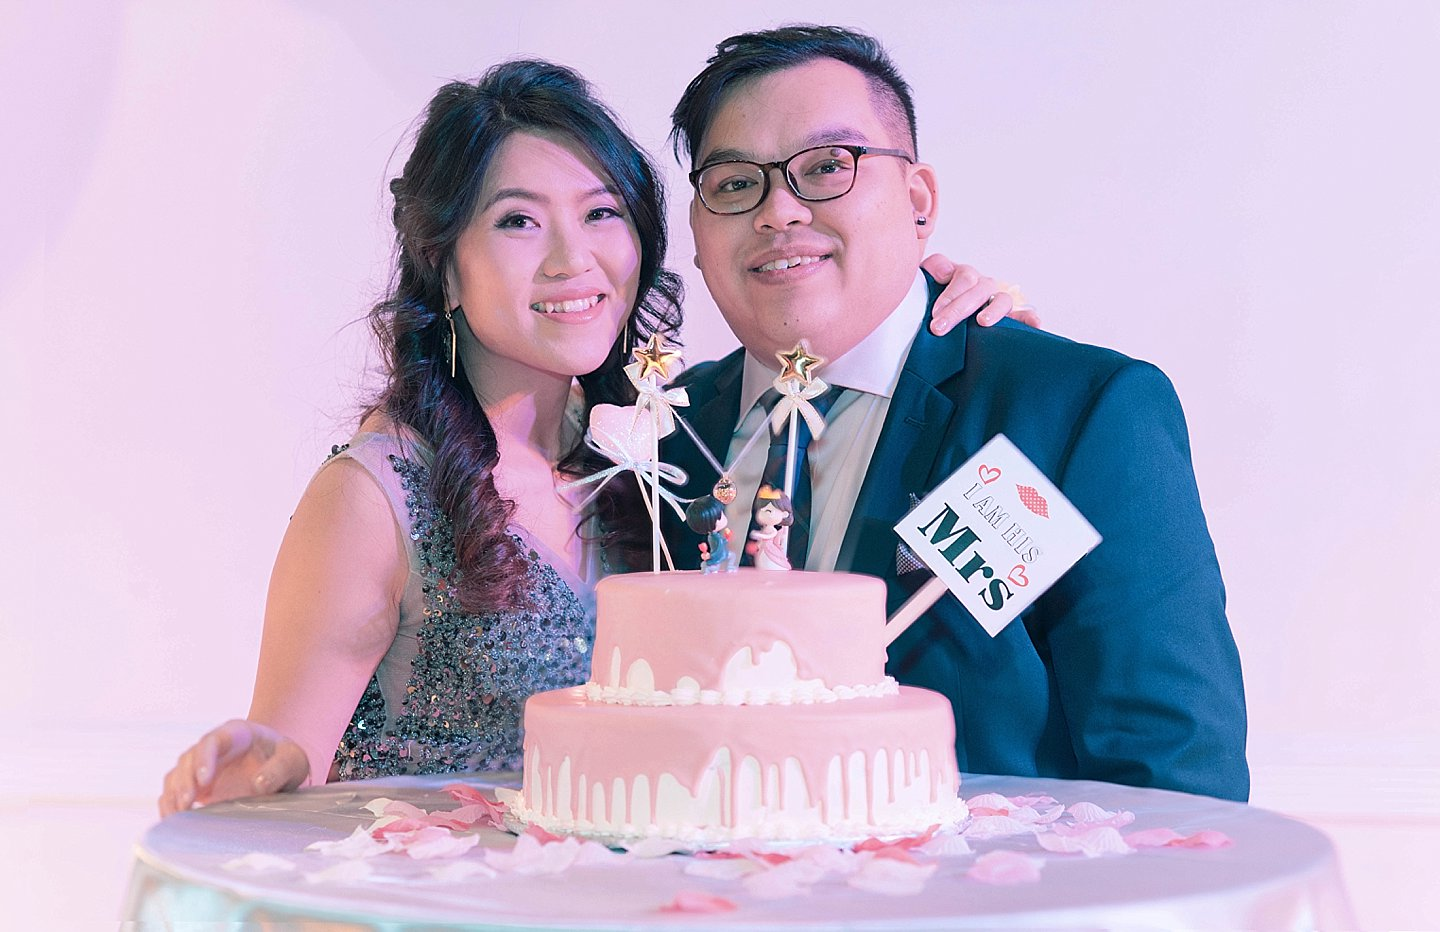 VJ Sugar-Swing-wedding-party_0006